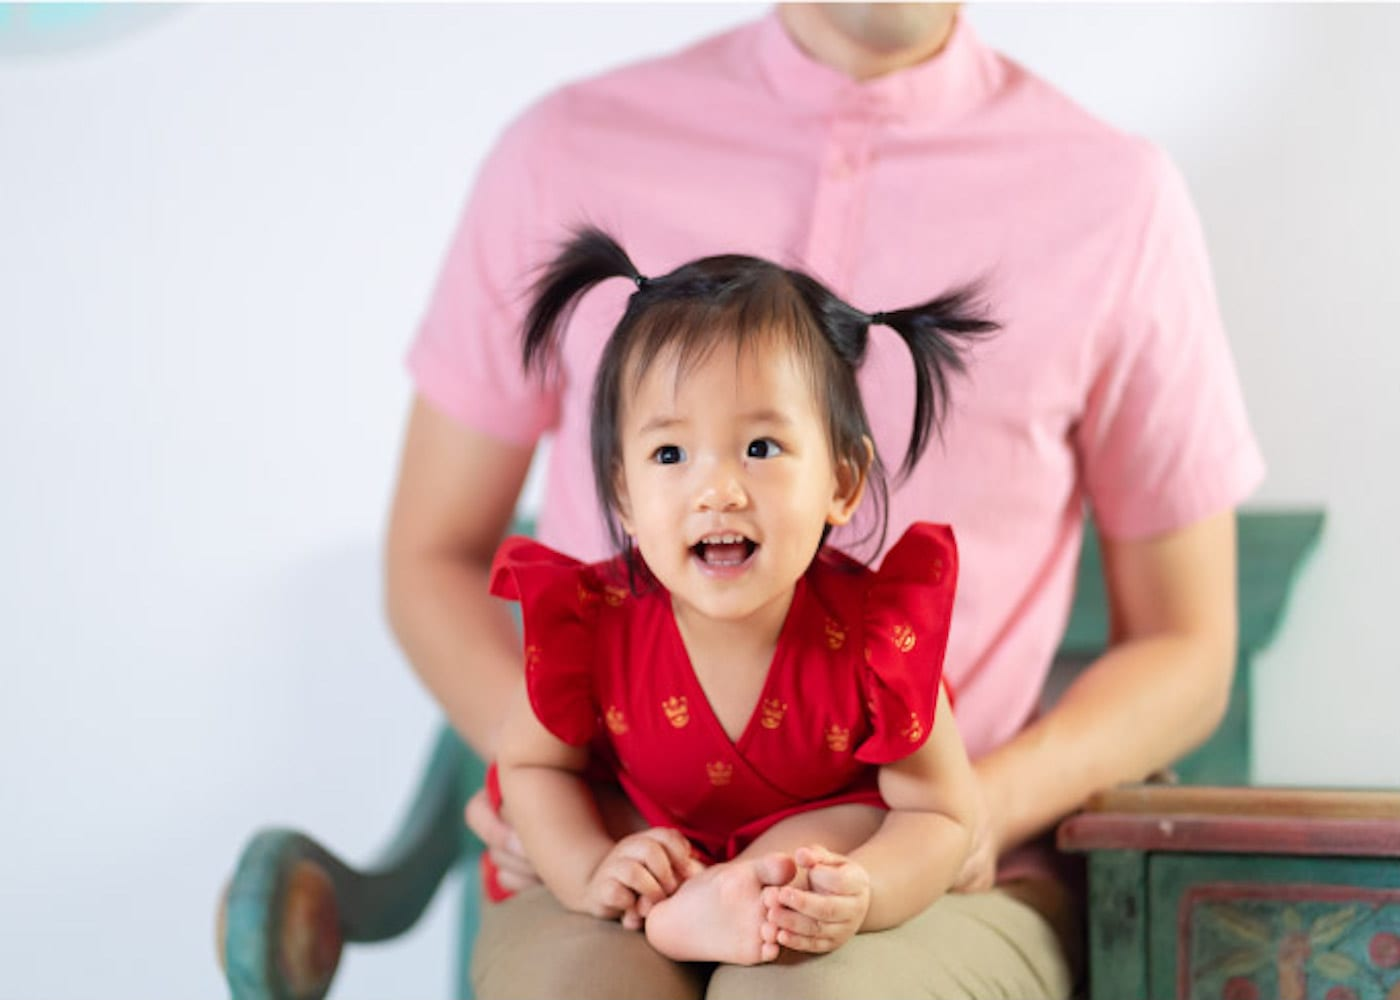 Where to buy Chinese New Year outfits for kids in Singapore: Le Petit Society